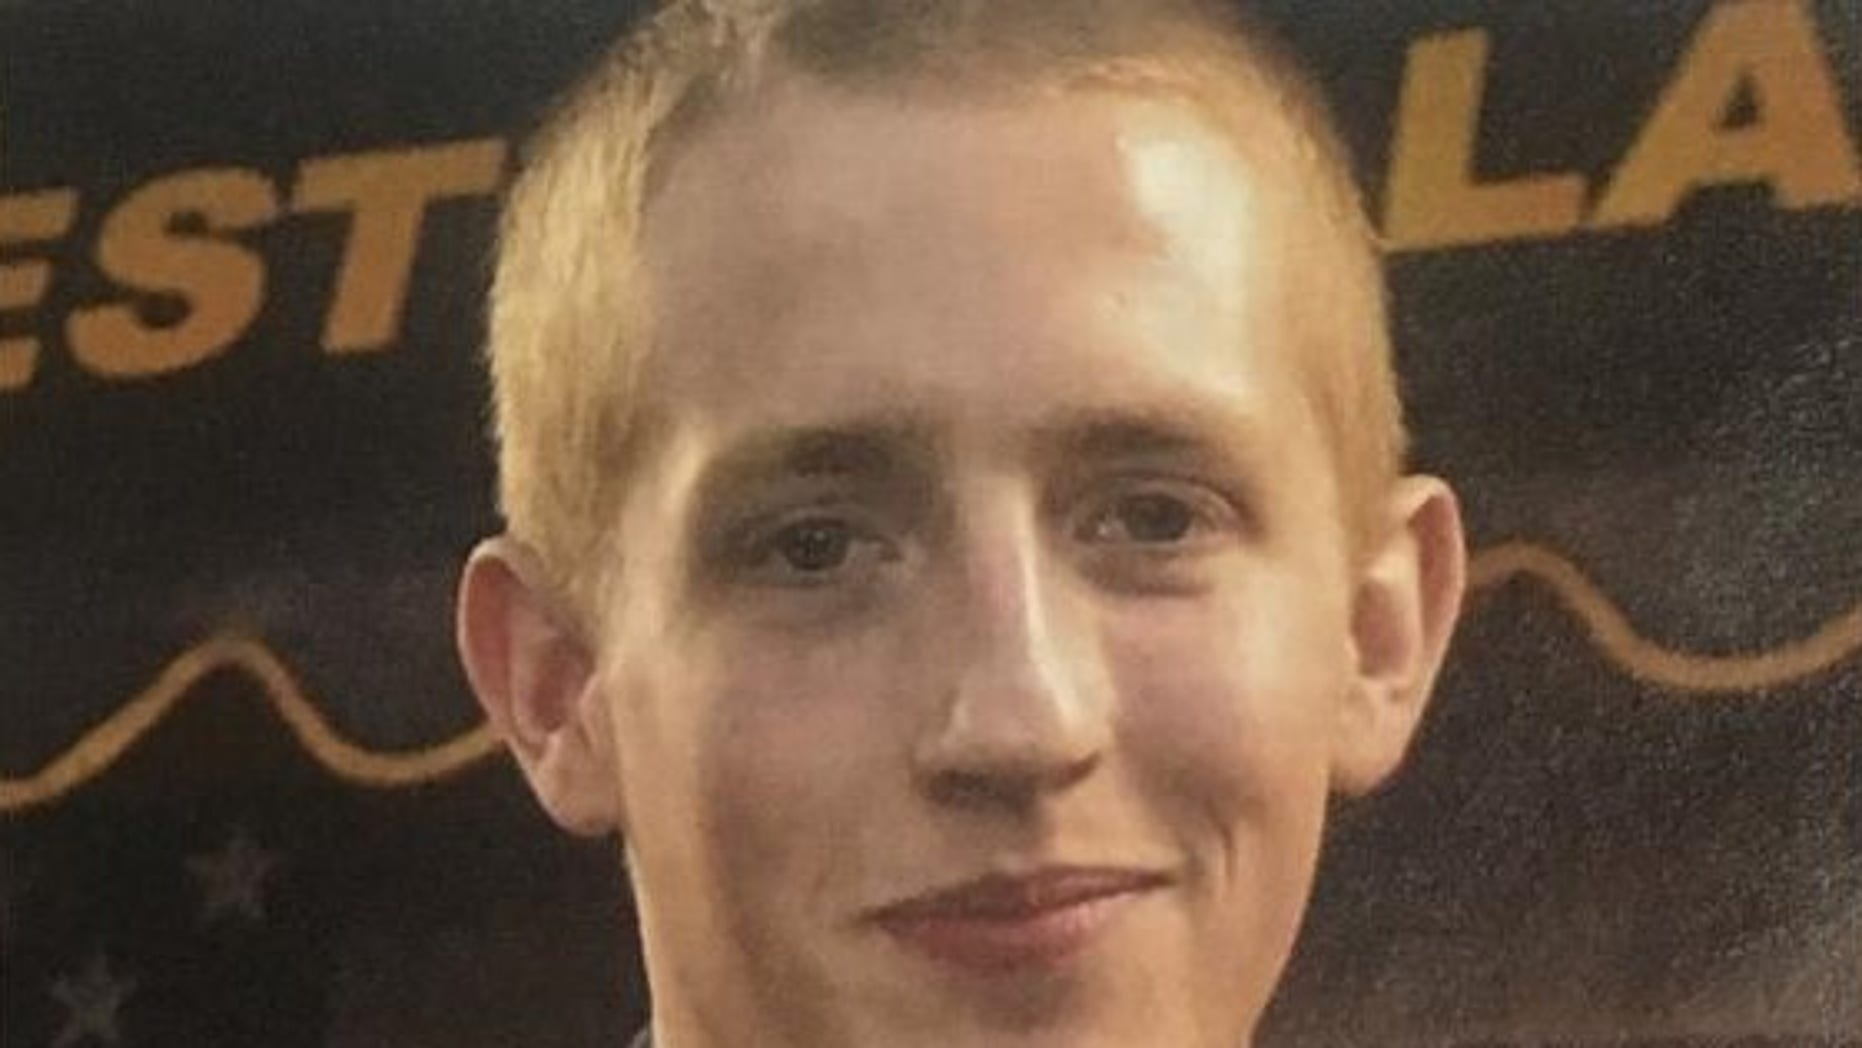 Jeremiah Adams, 24, was found dead Saturday after vanishing on May 4 during a hike.